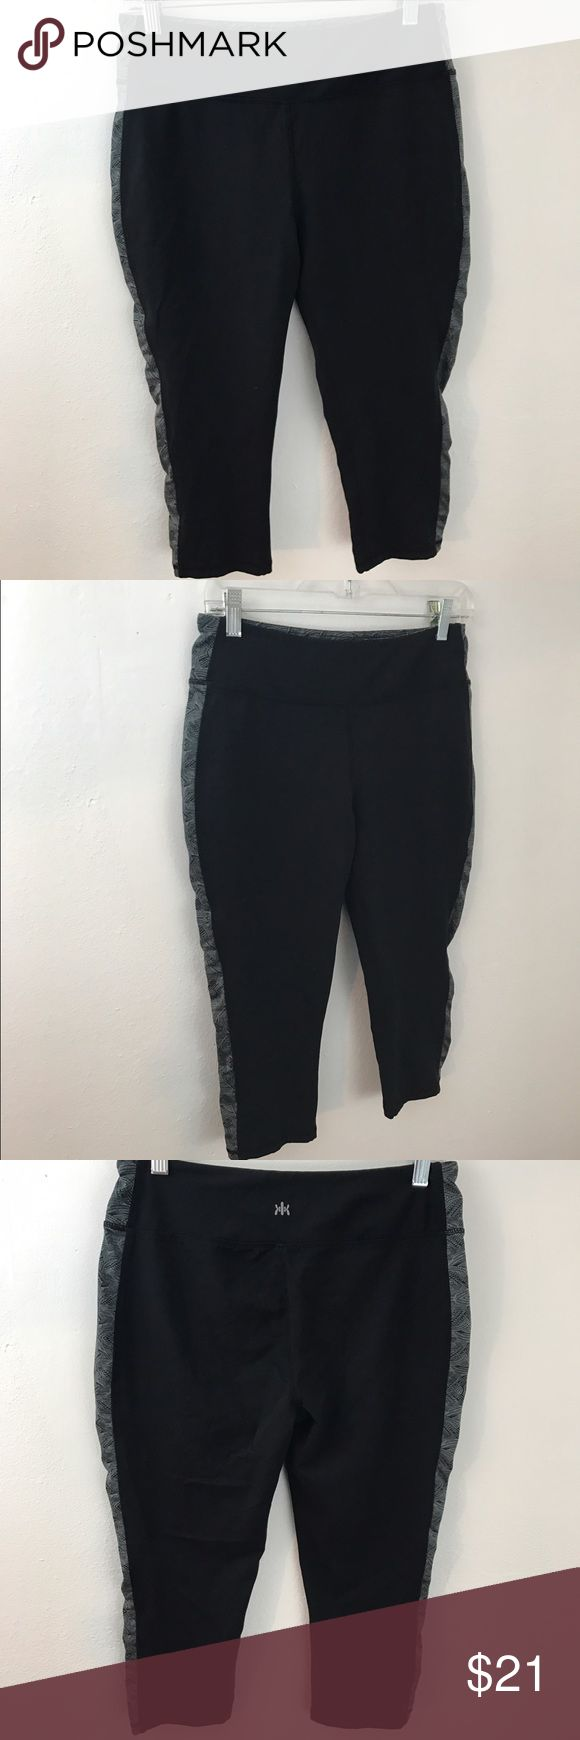 Kyodan Capri Pants Leggings Work Out Yoga Gym L Kyodan Capri Pants Leggings Black Sz Large Womens Athletic Work Out Yoga Gym In excellent preloved condition Kyodan Pants Leggings